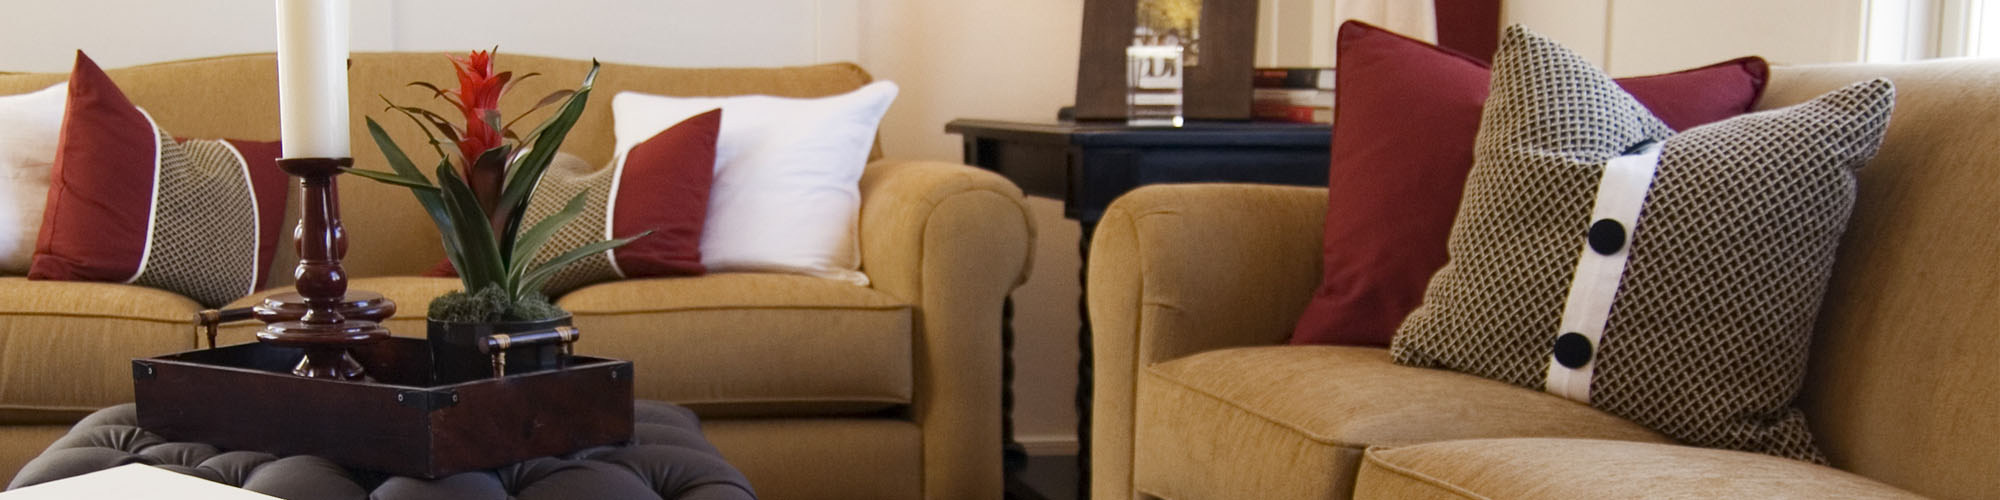 sofa and chairs bloomington mn upholstery cleaning products for sofas furniture repair